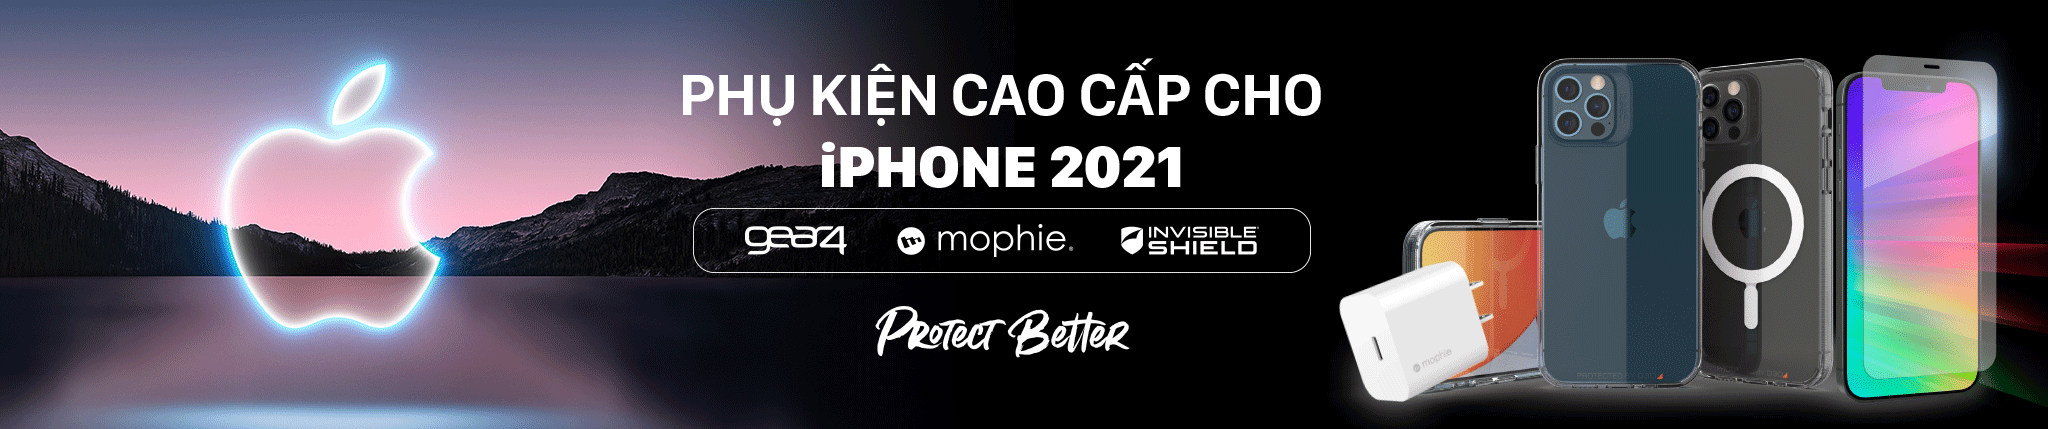 Banner-Tinhte-AppleEvent2021-2048x429.png